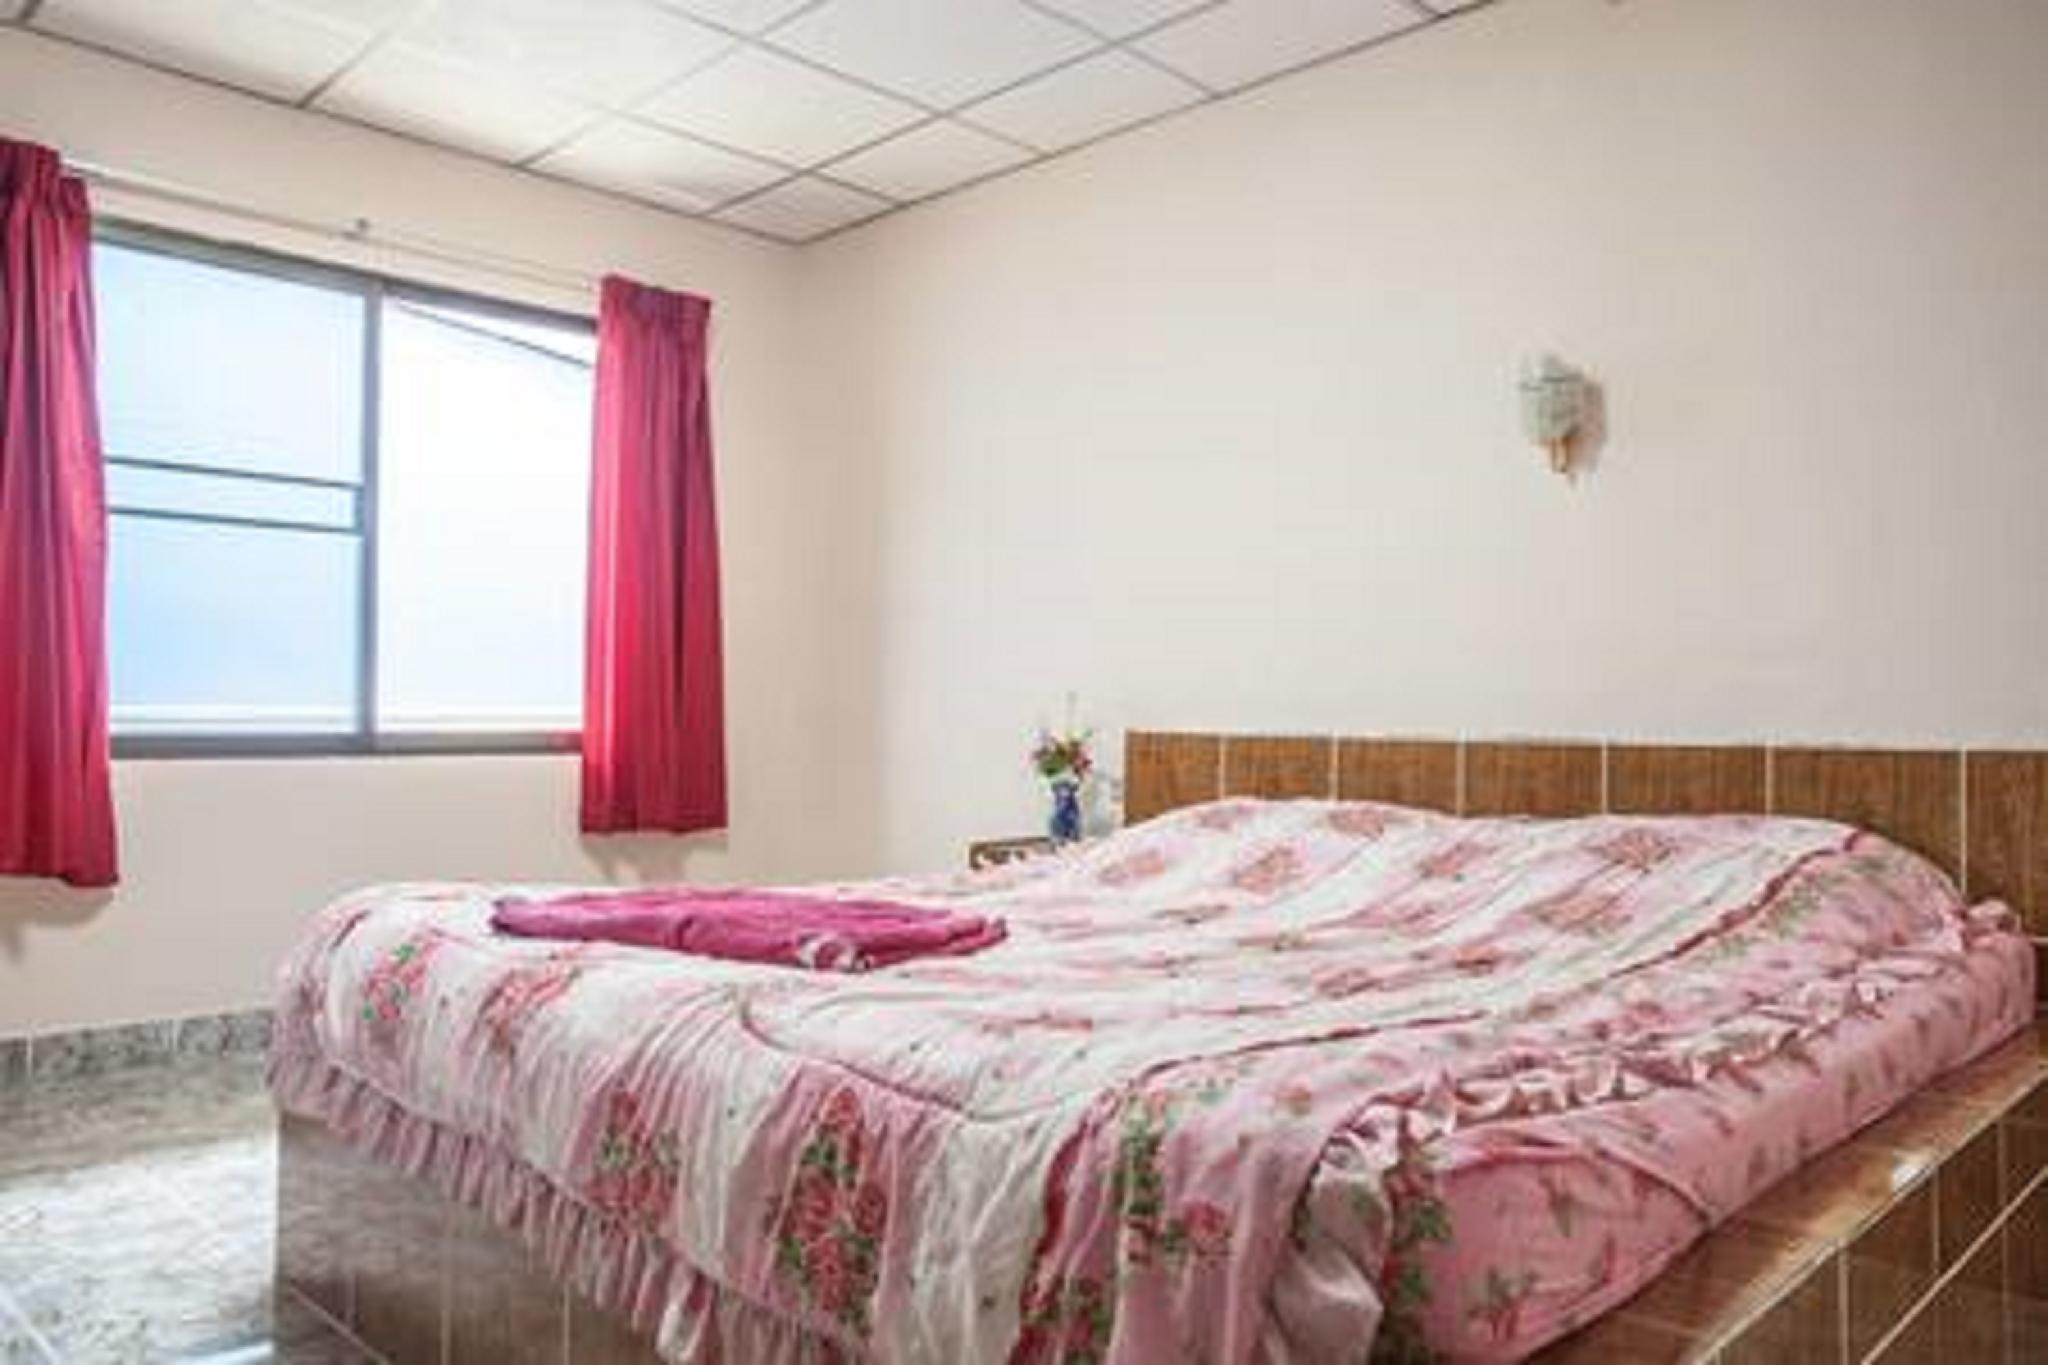 Clean Guestrooms,And Not Far From The Beach Clean Guestrooms,And Not Far From The Beach